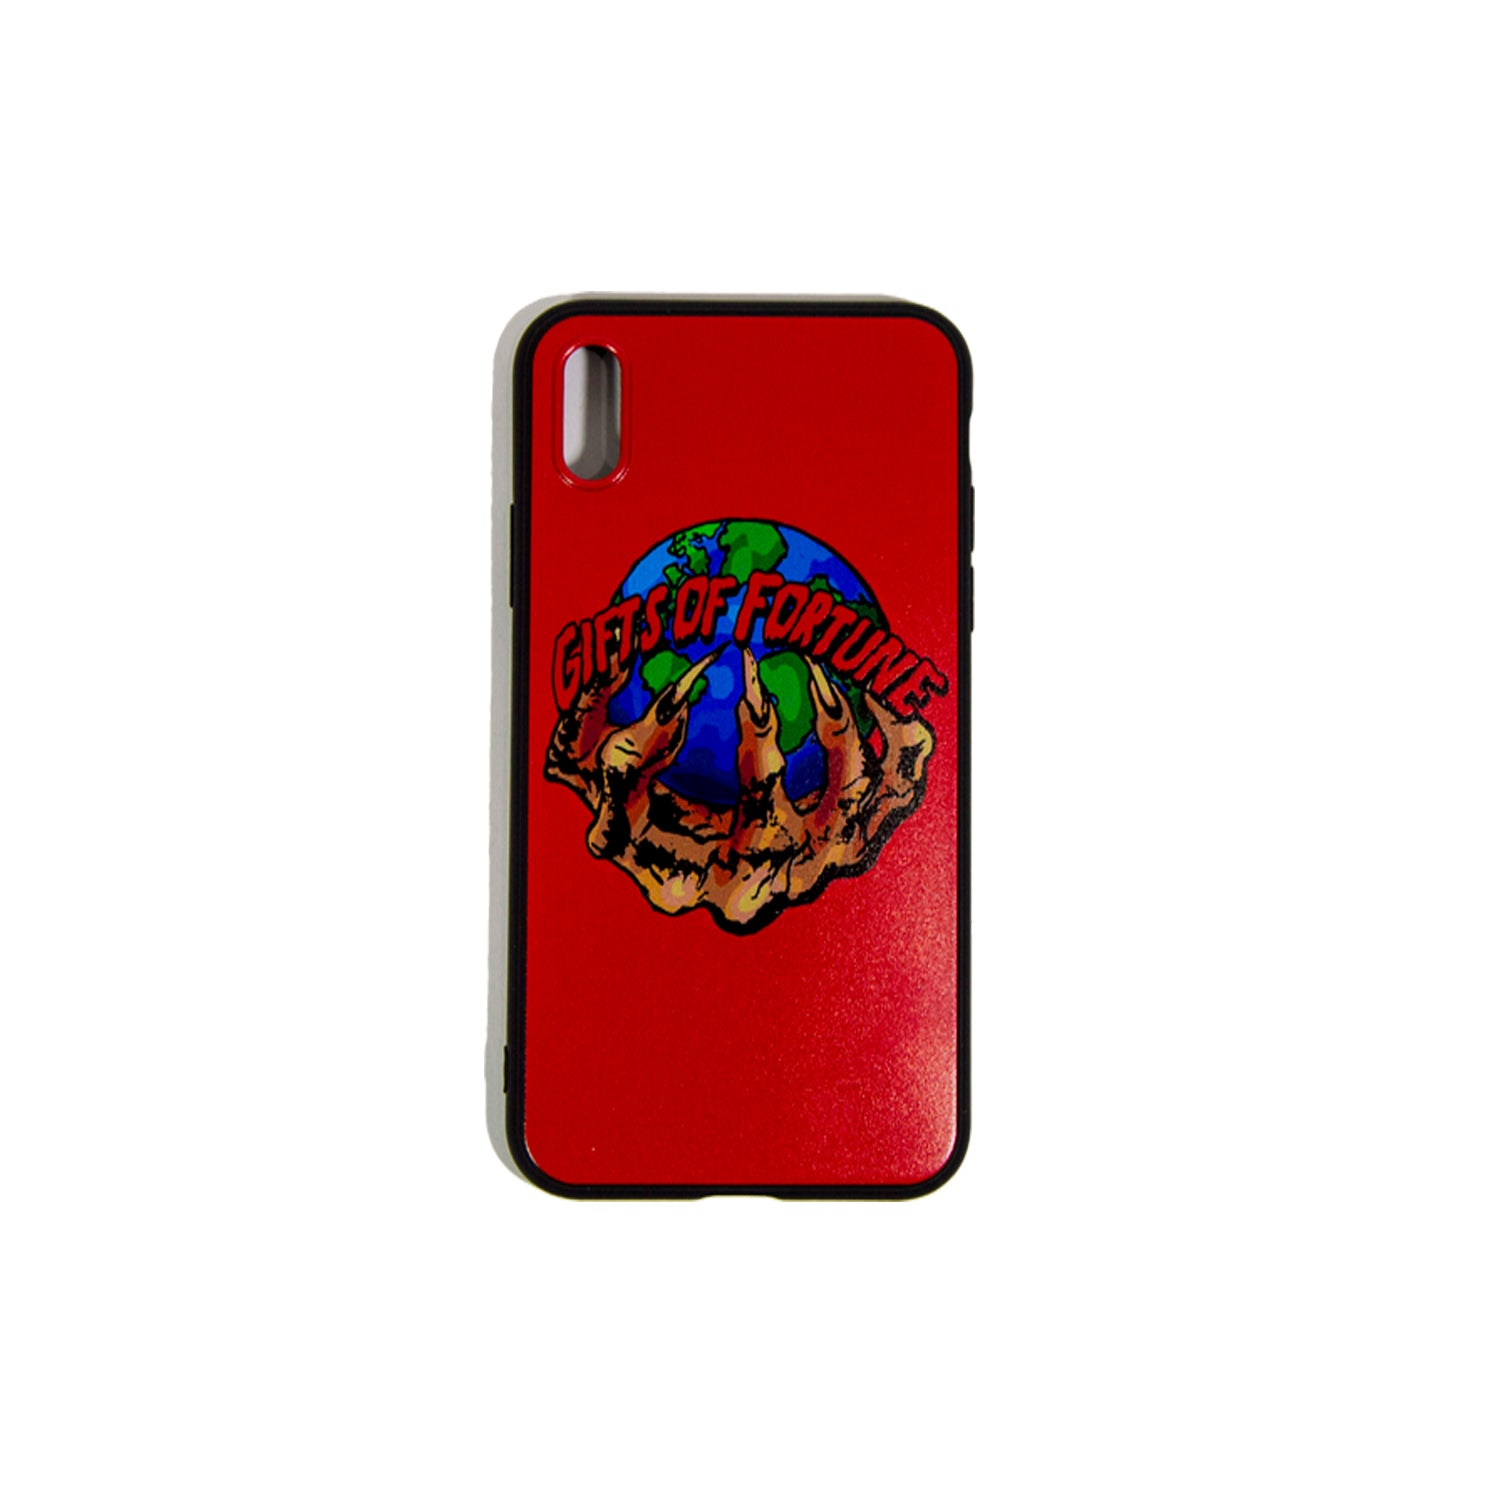 Red The World is Yours iPhone Case - Gifts of Fortune